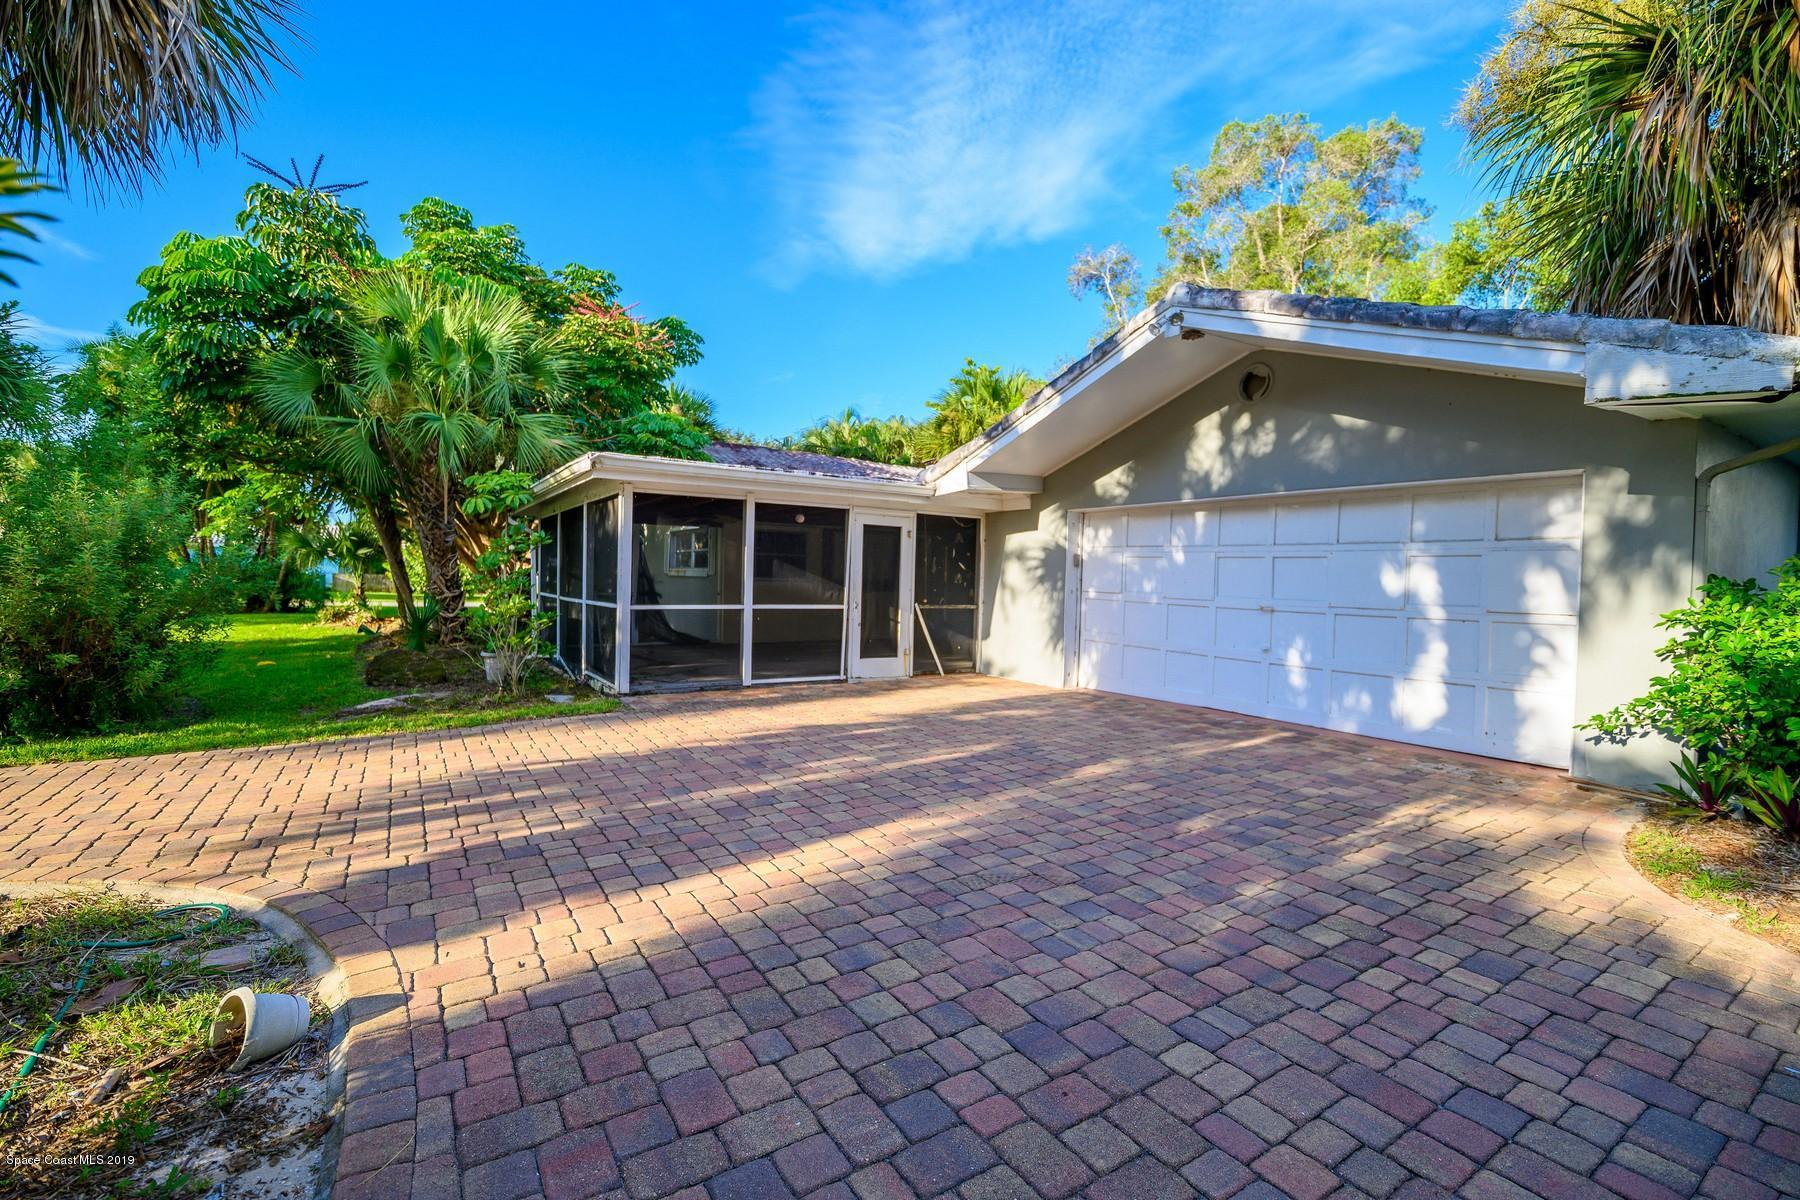 Single Family Homes for Sale at 500 First Melbourne Beach, Florida 32951 United States